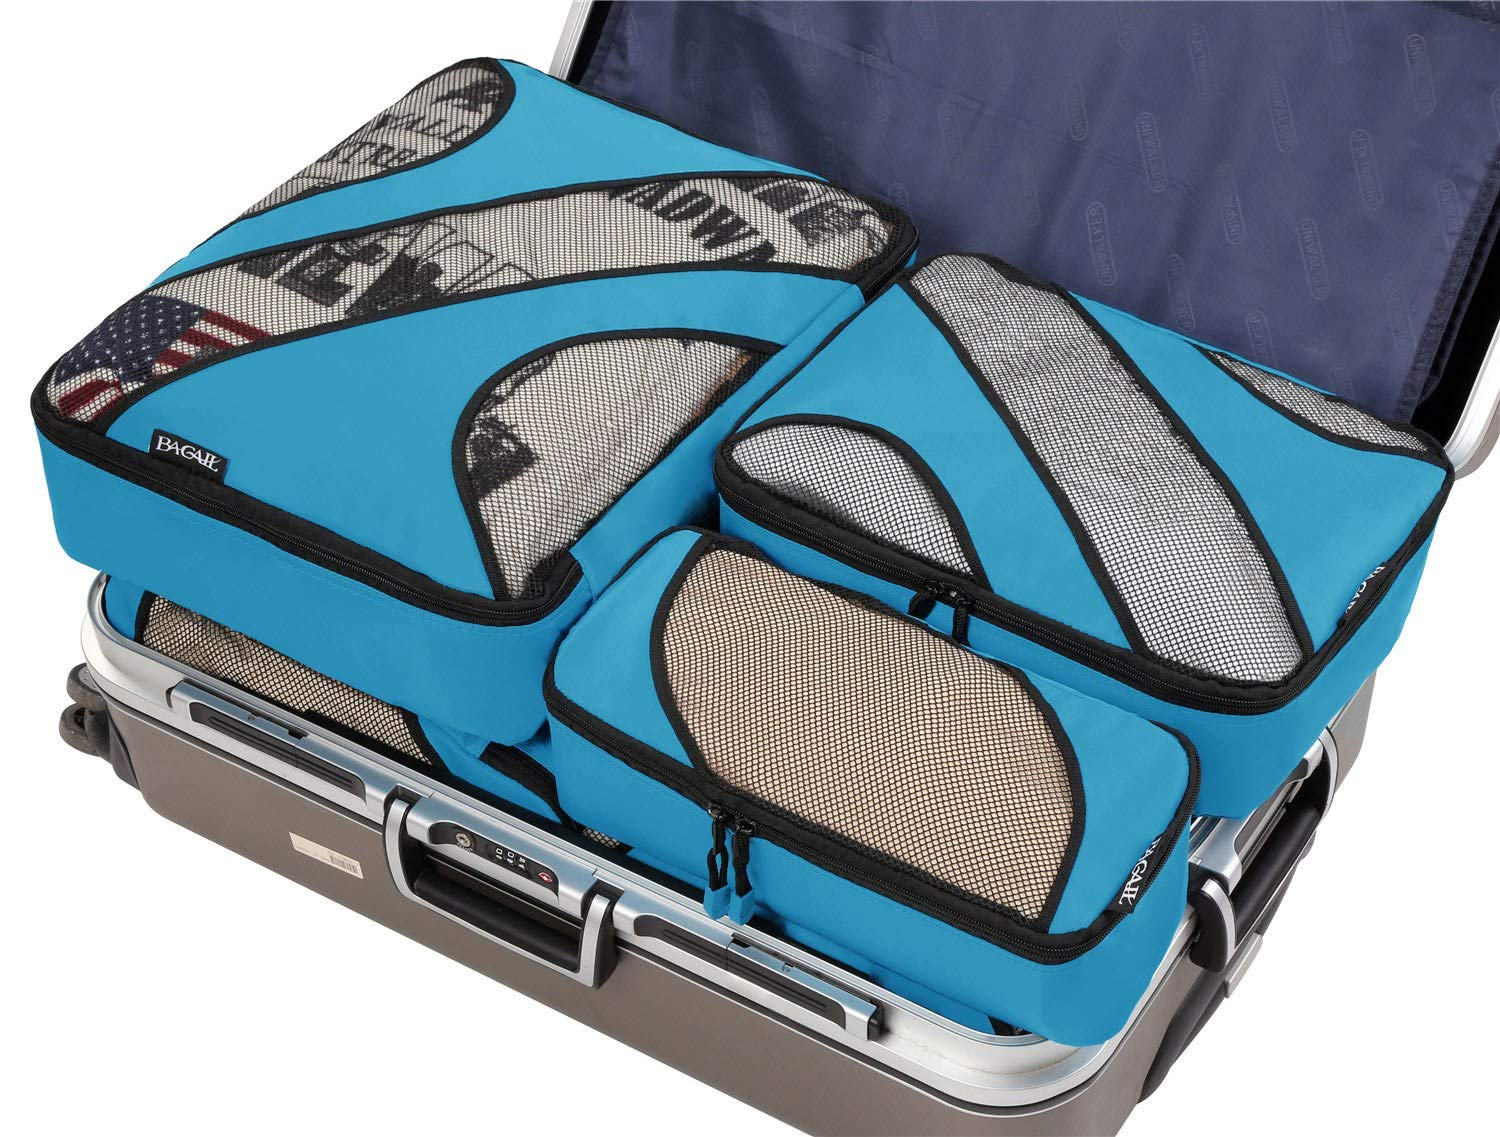 6 Set Packing Cubes,3 Various Sizes Travel Luggage Packing Organizers Blue by BAGAIL (Image #6)